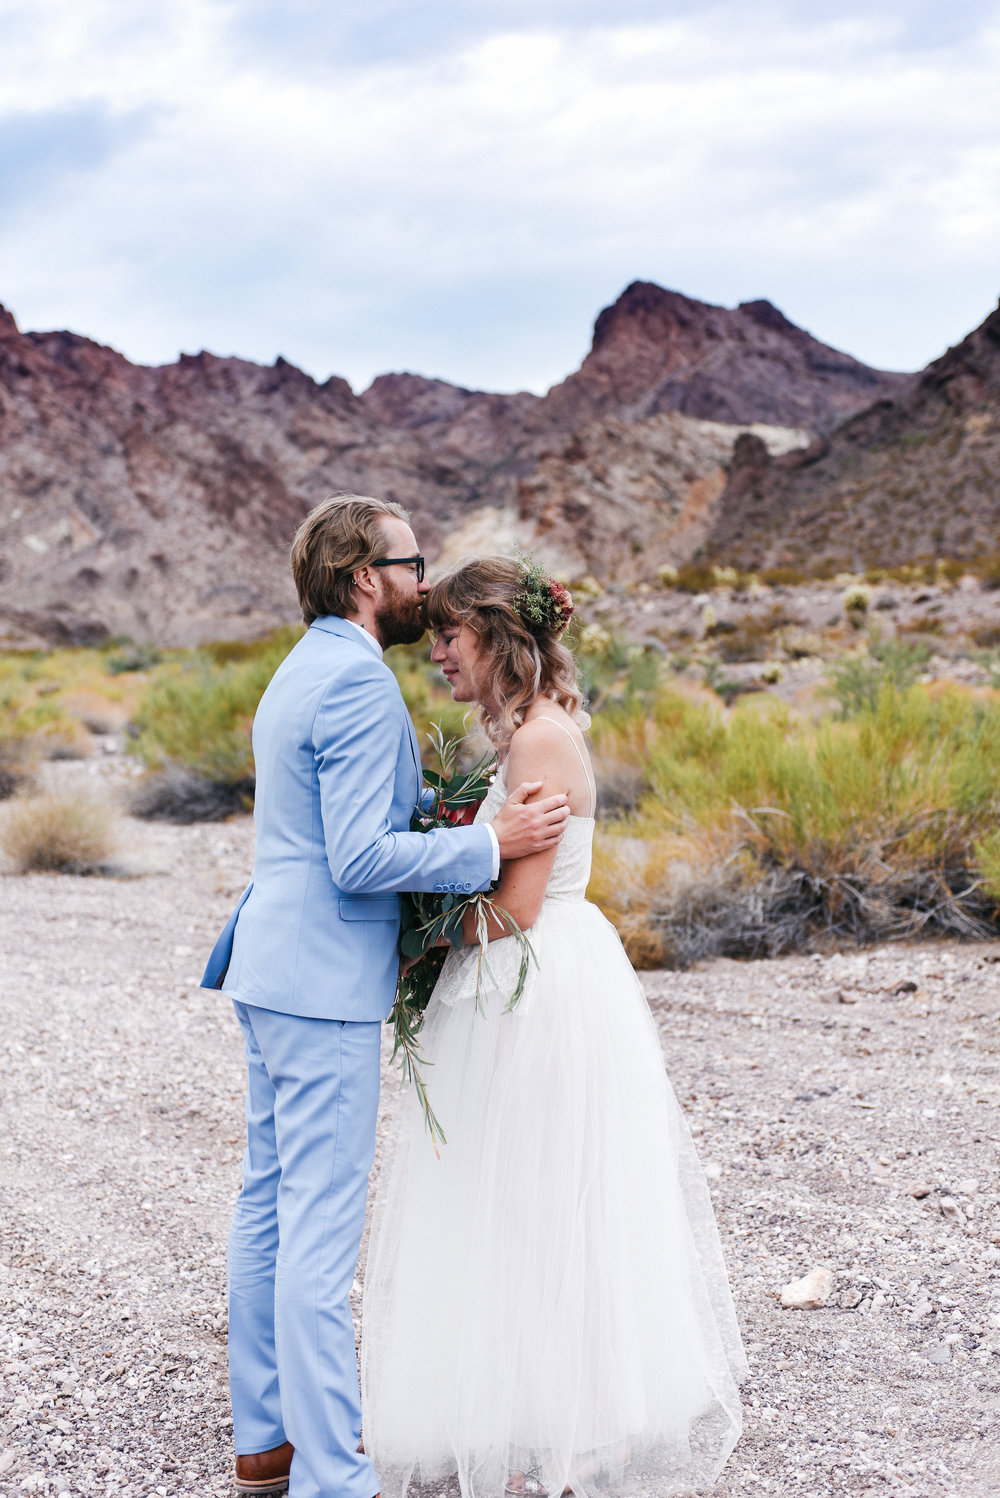 Las Vegas elopement flora pop desert wedding Photography By Ashley Marie-30.jpg